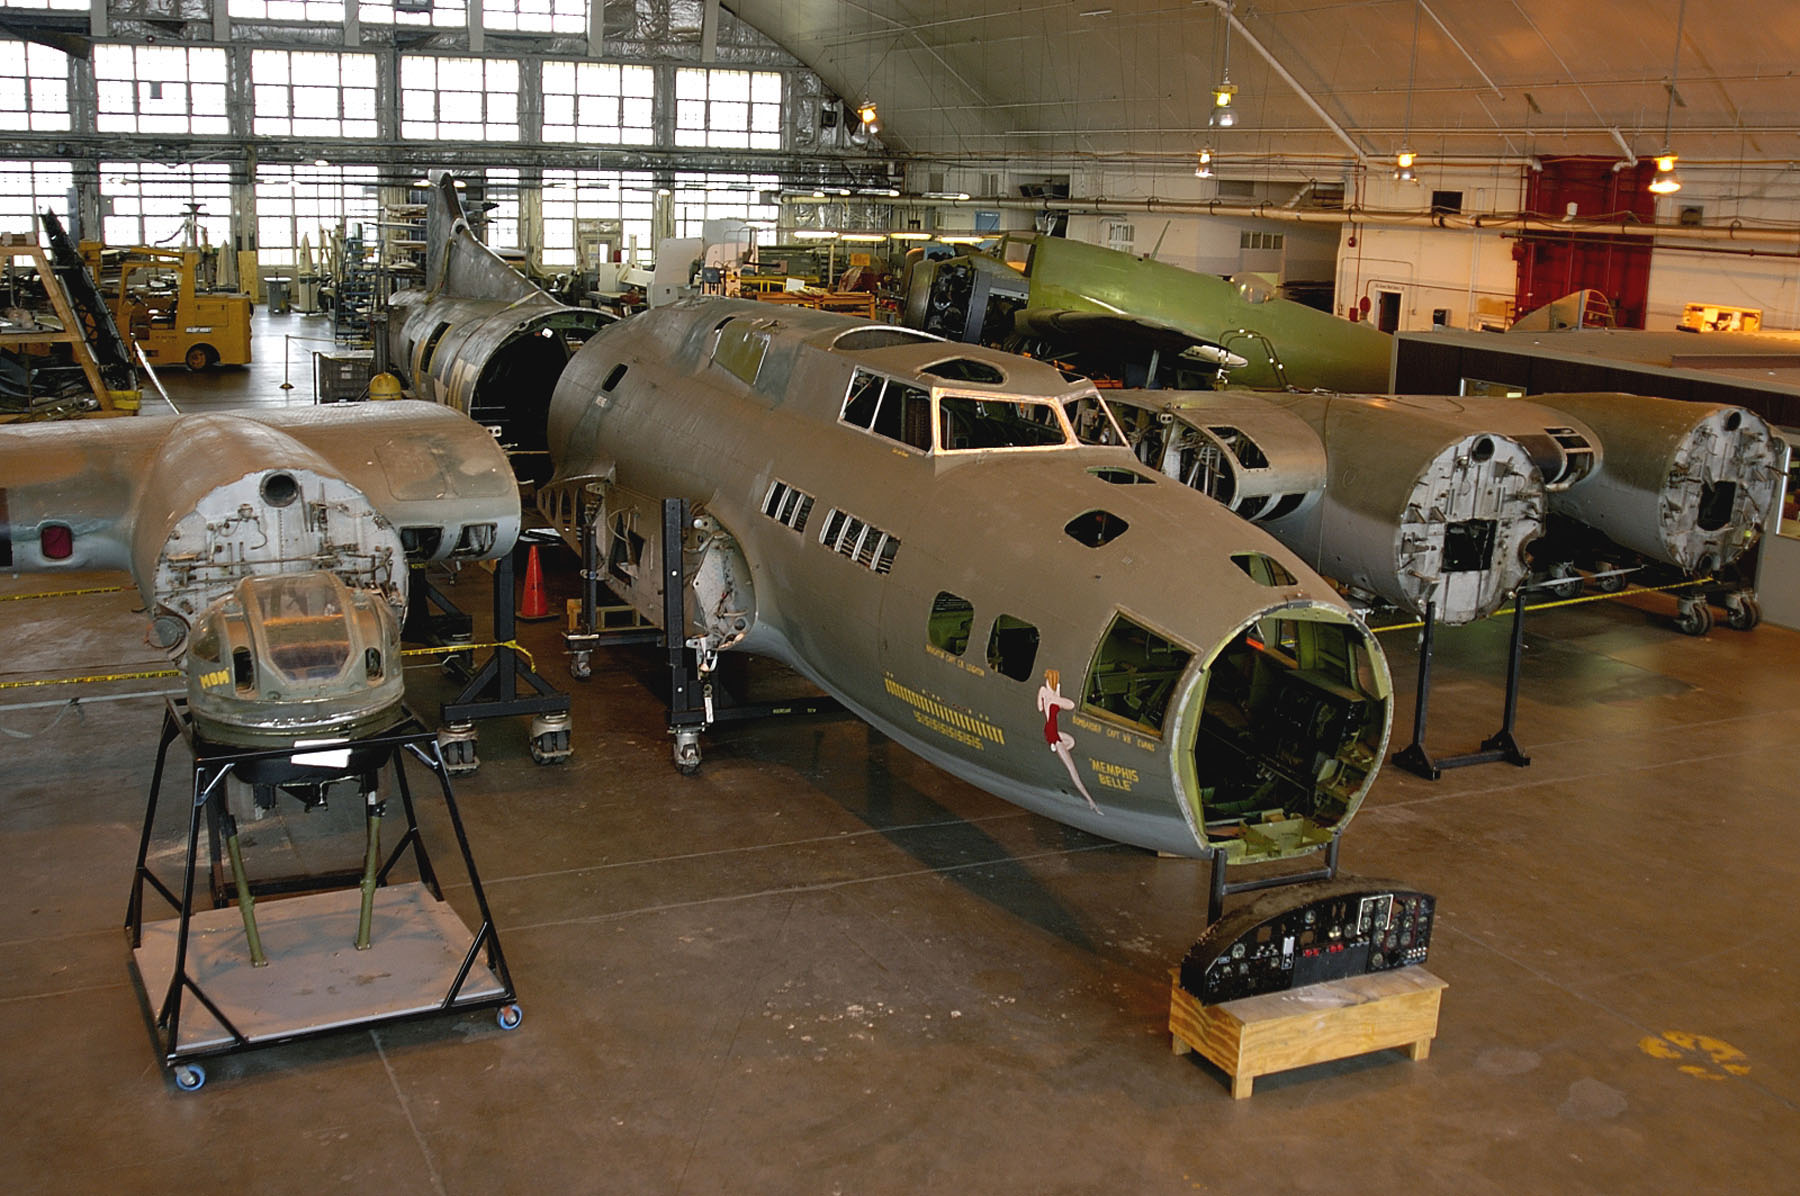 museum restoration division seeks memphis belle photos national museum of the us air force. Black Bedroom Furniture Sets. Home Design Ideas